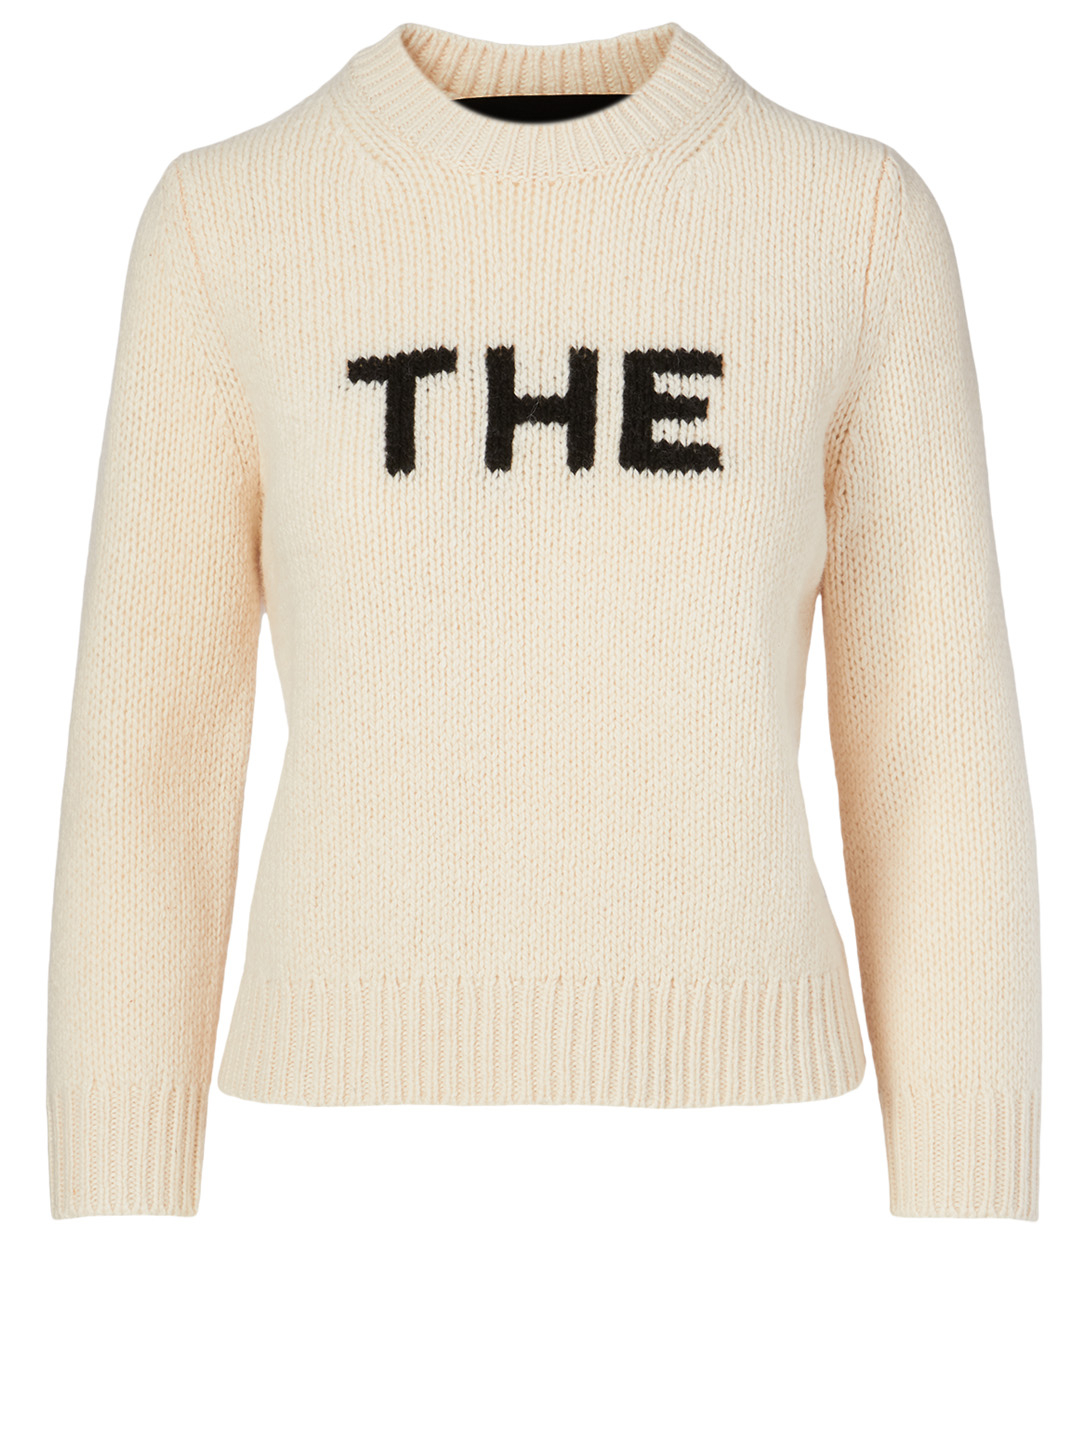 THE MARC JACOBS The Wool-Blend Sweater Women's White